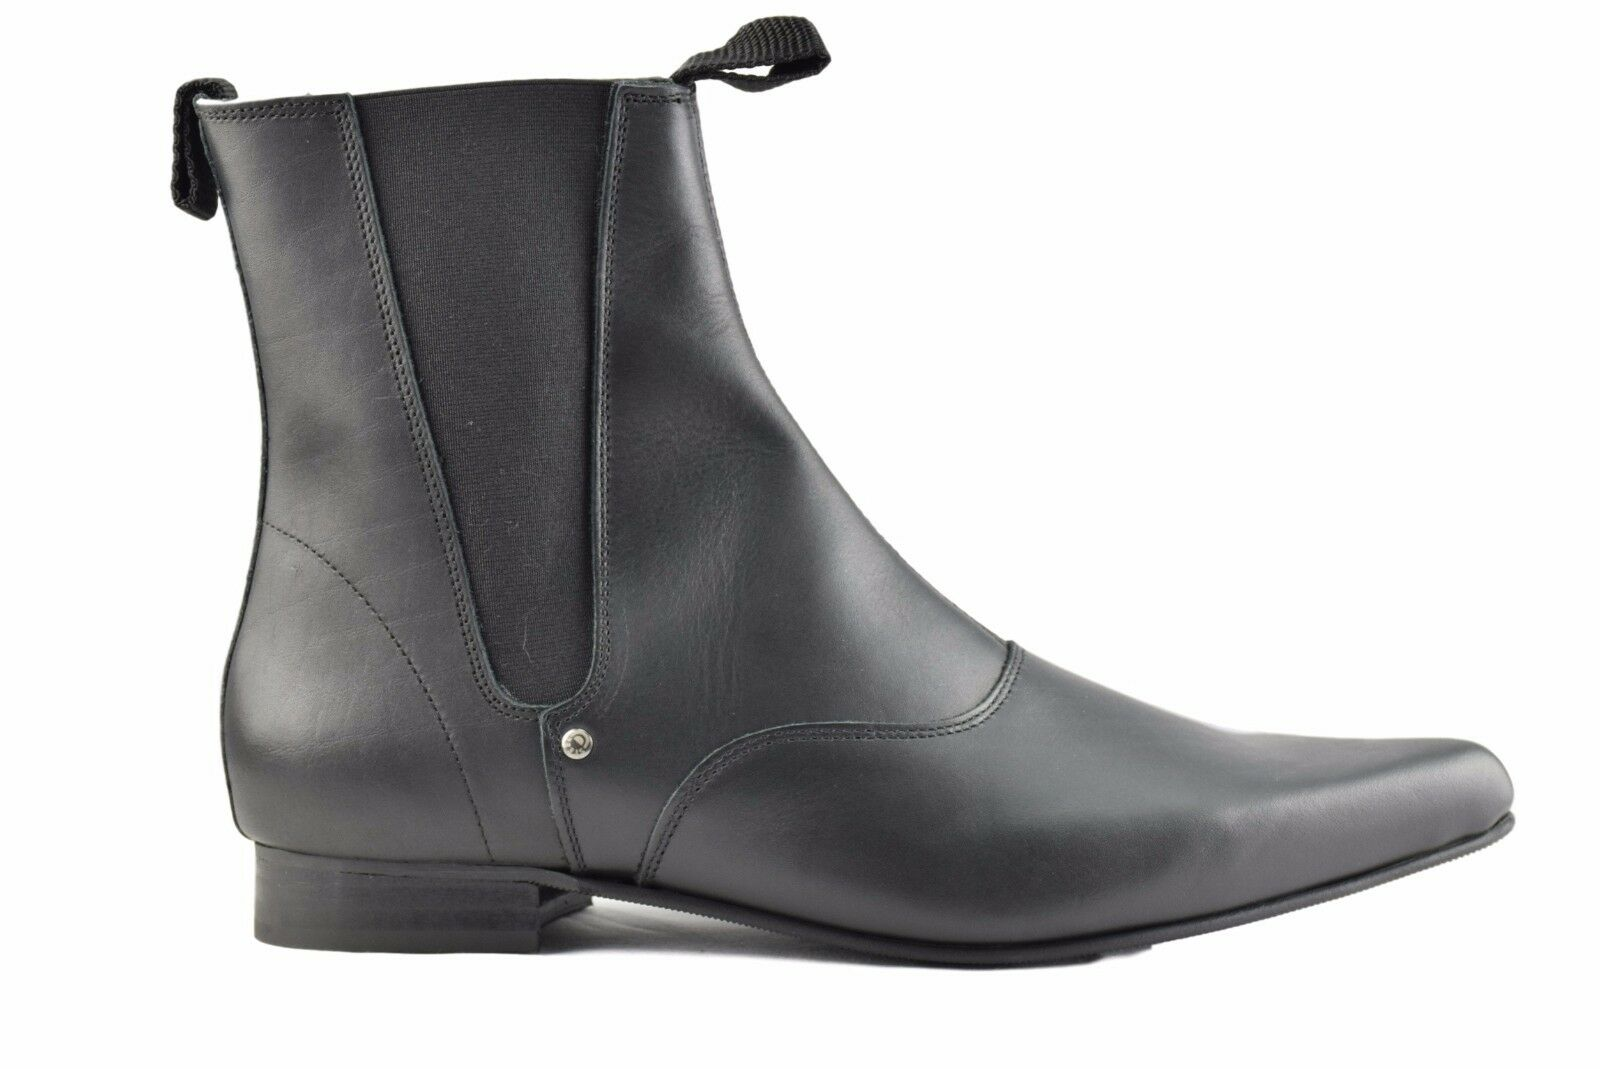 Steel Ground schwarz Leder Chelsea Stiefel Ankle Boot Winklepicker Sb003Z92